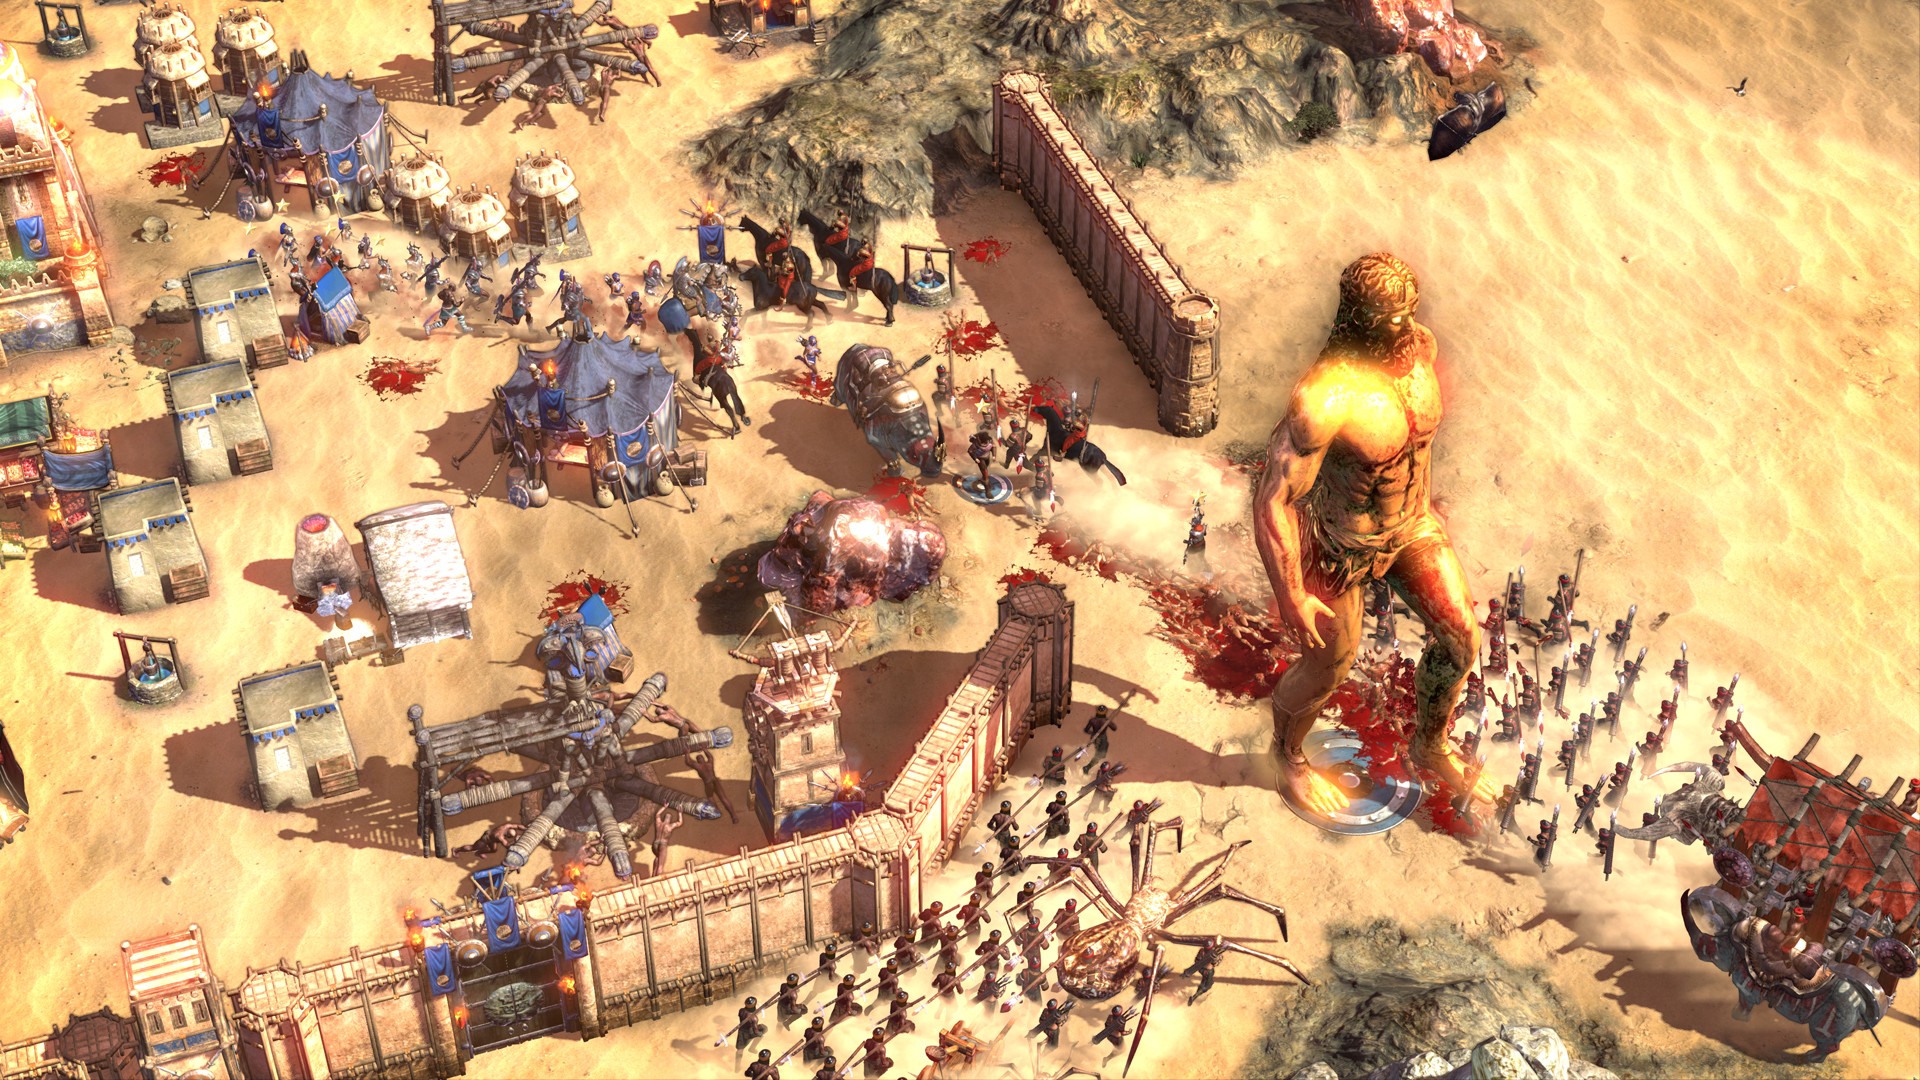 Funcom Announces Conan Unconquered, a RTS Game Set in the Conan Universe